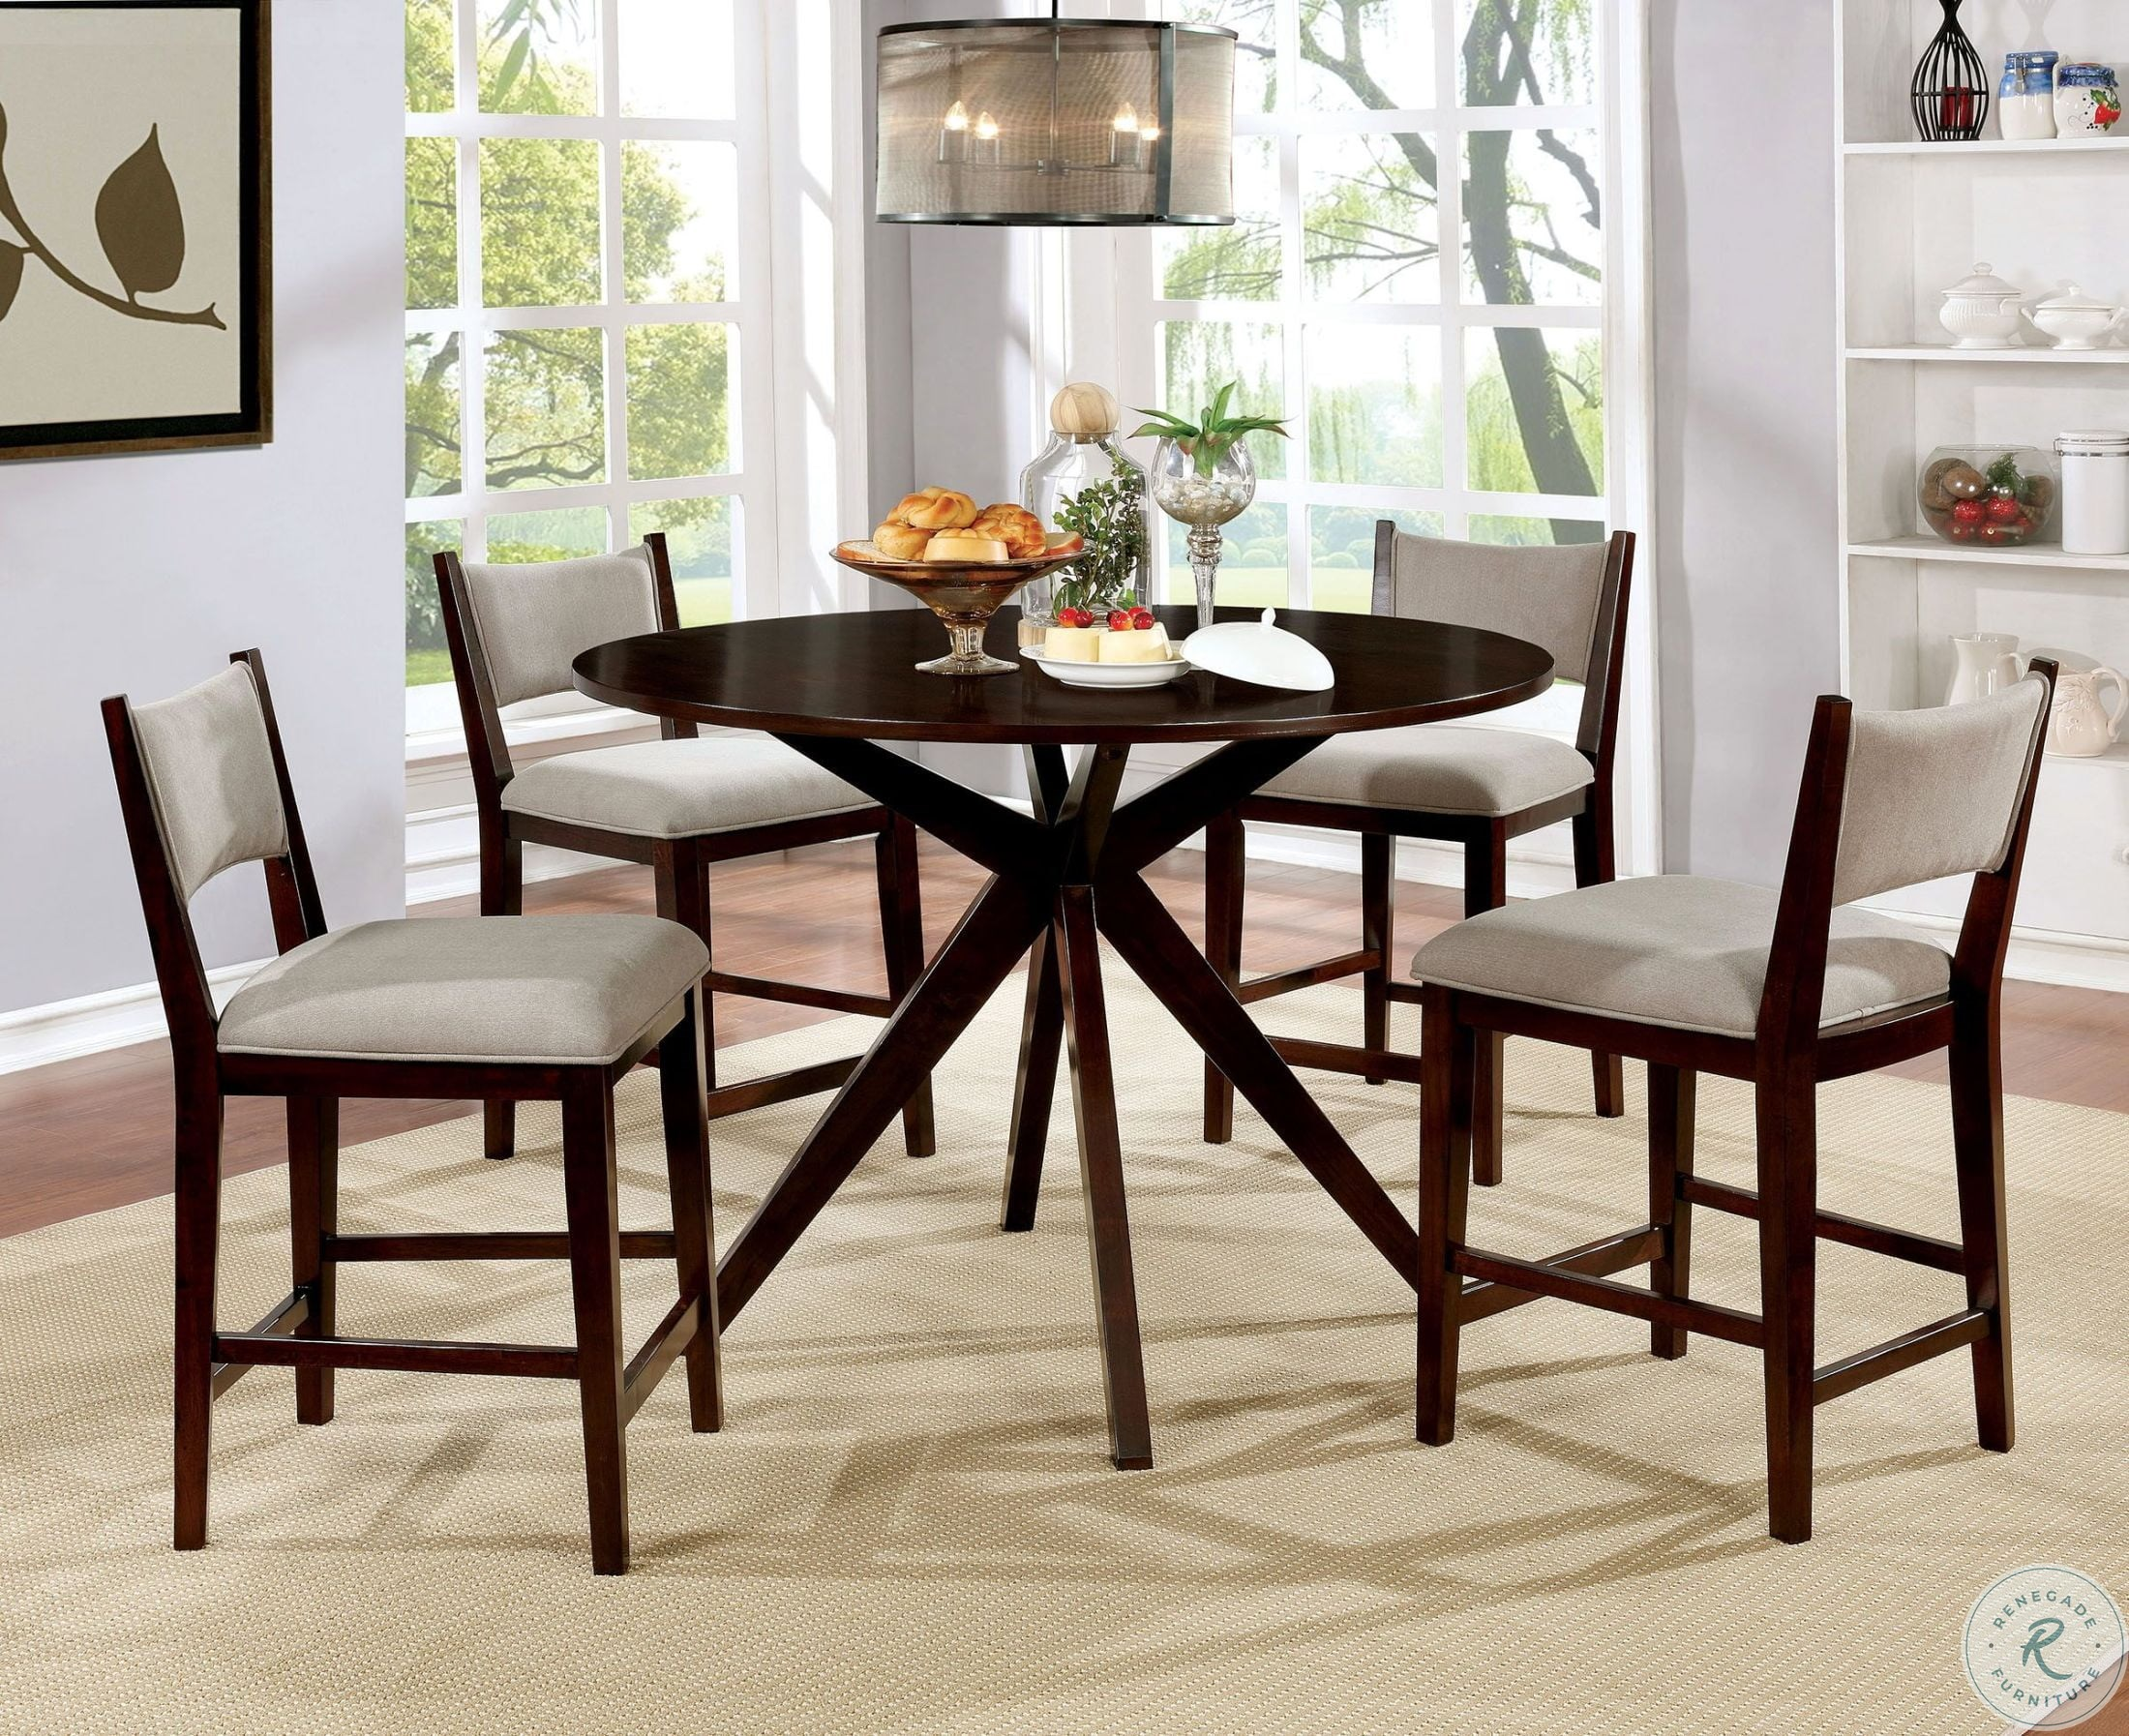 a023631dd0 Image of ensemble item Kaidence Brown Cherry Round Counter Height Dining  Room Set